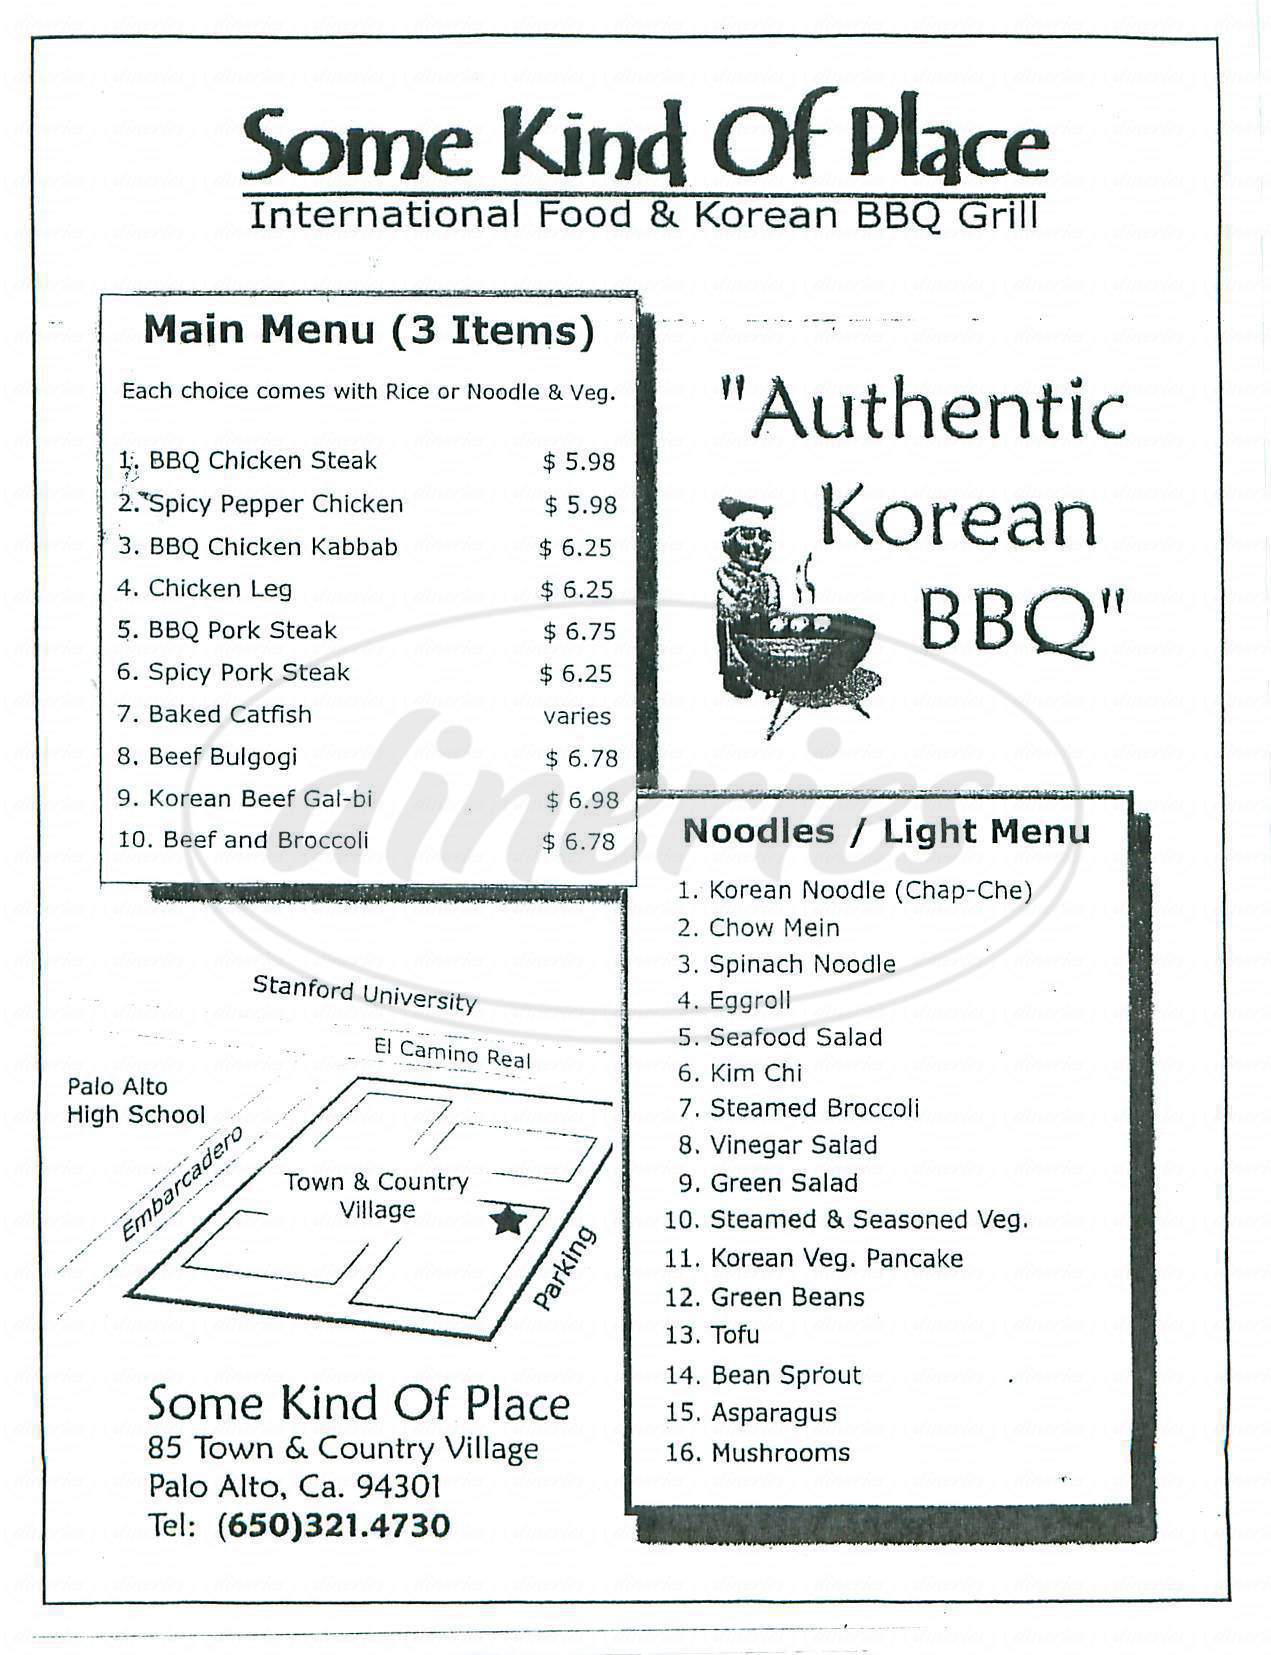 menu for Some Kind of Place